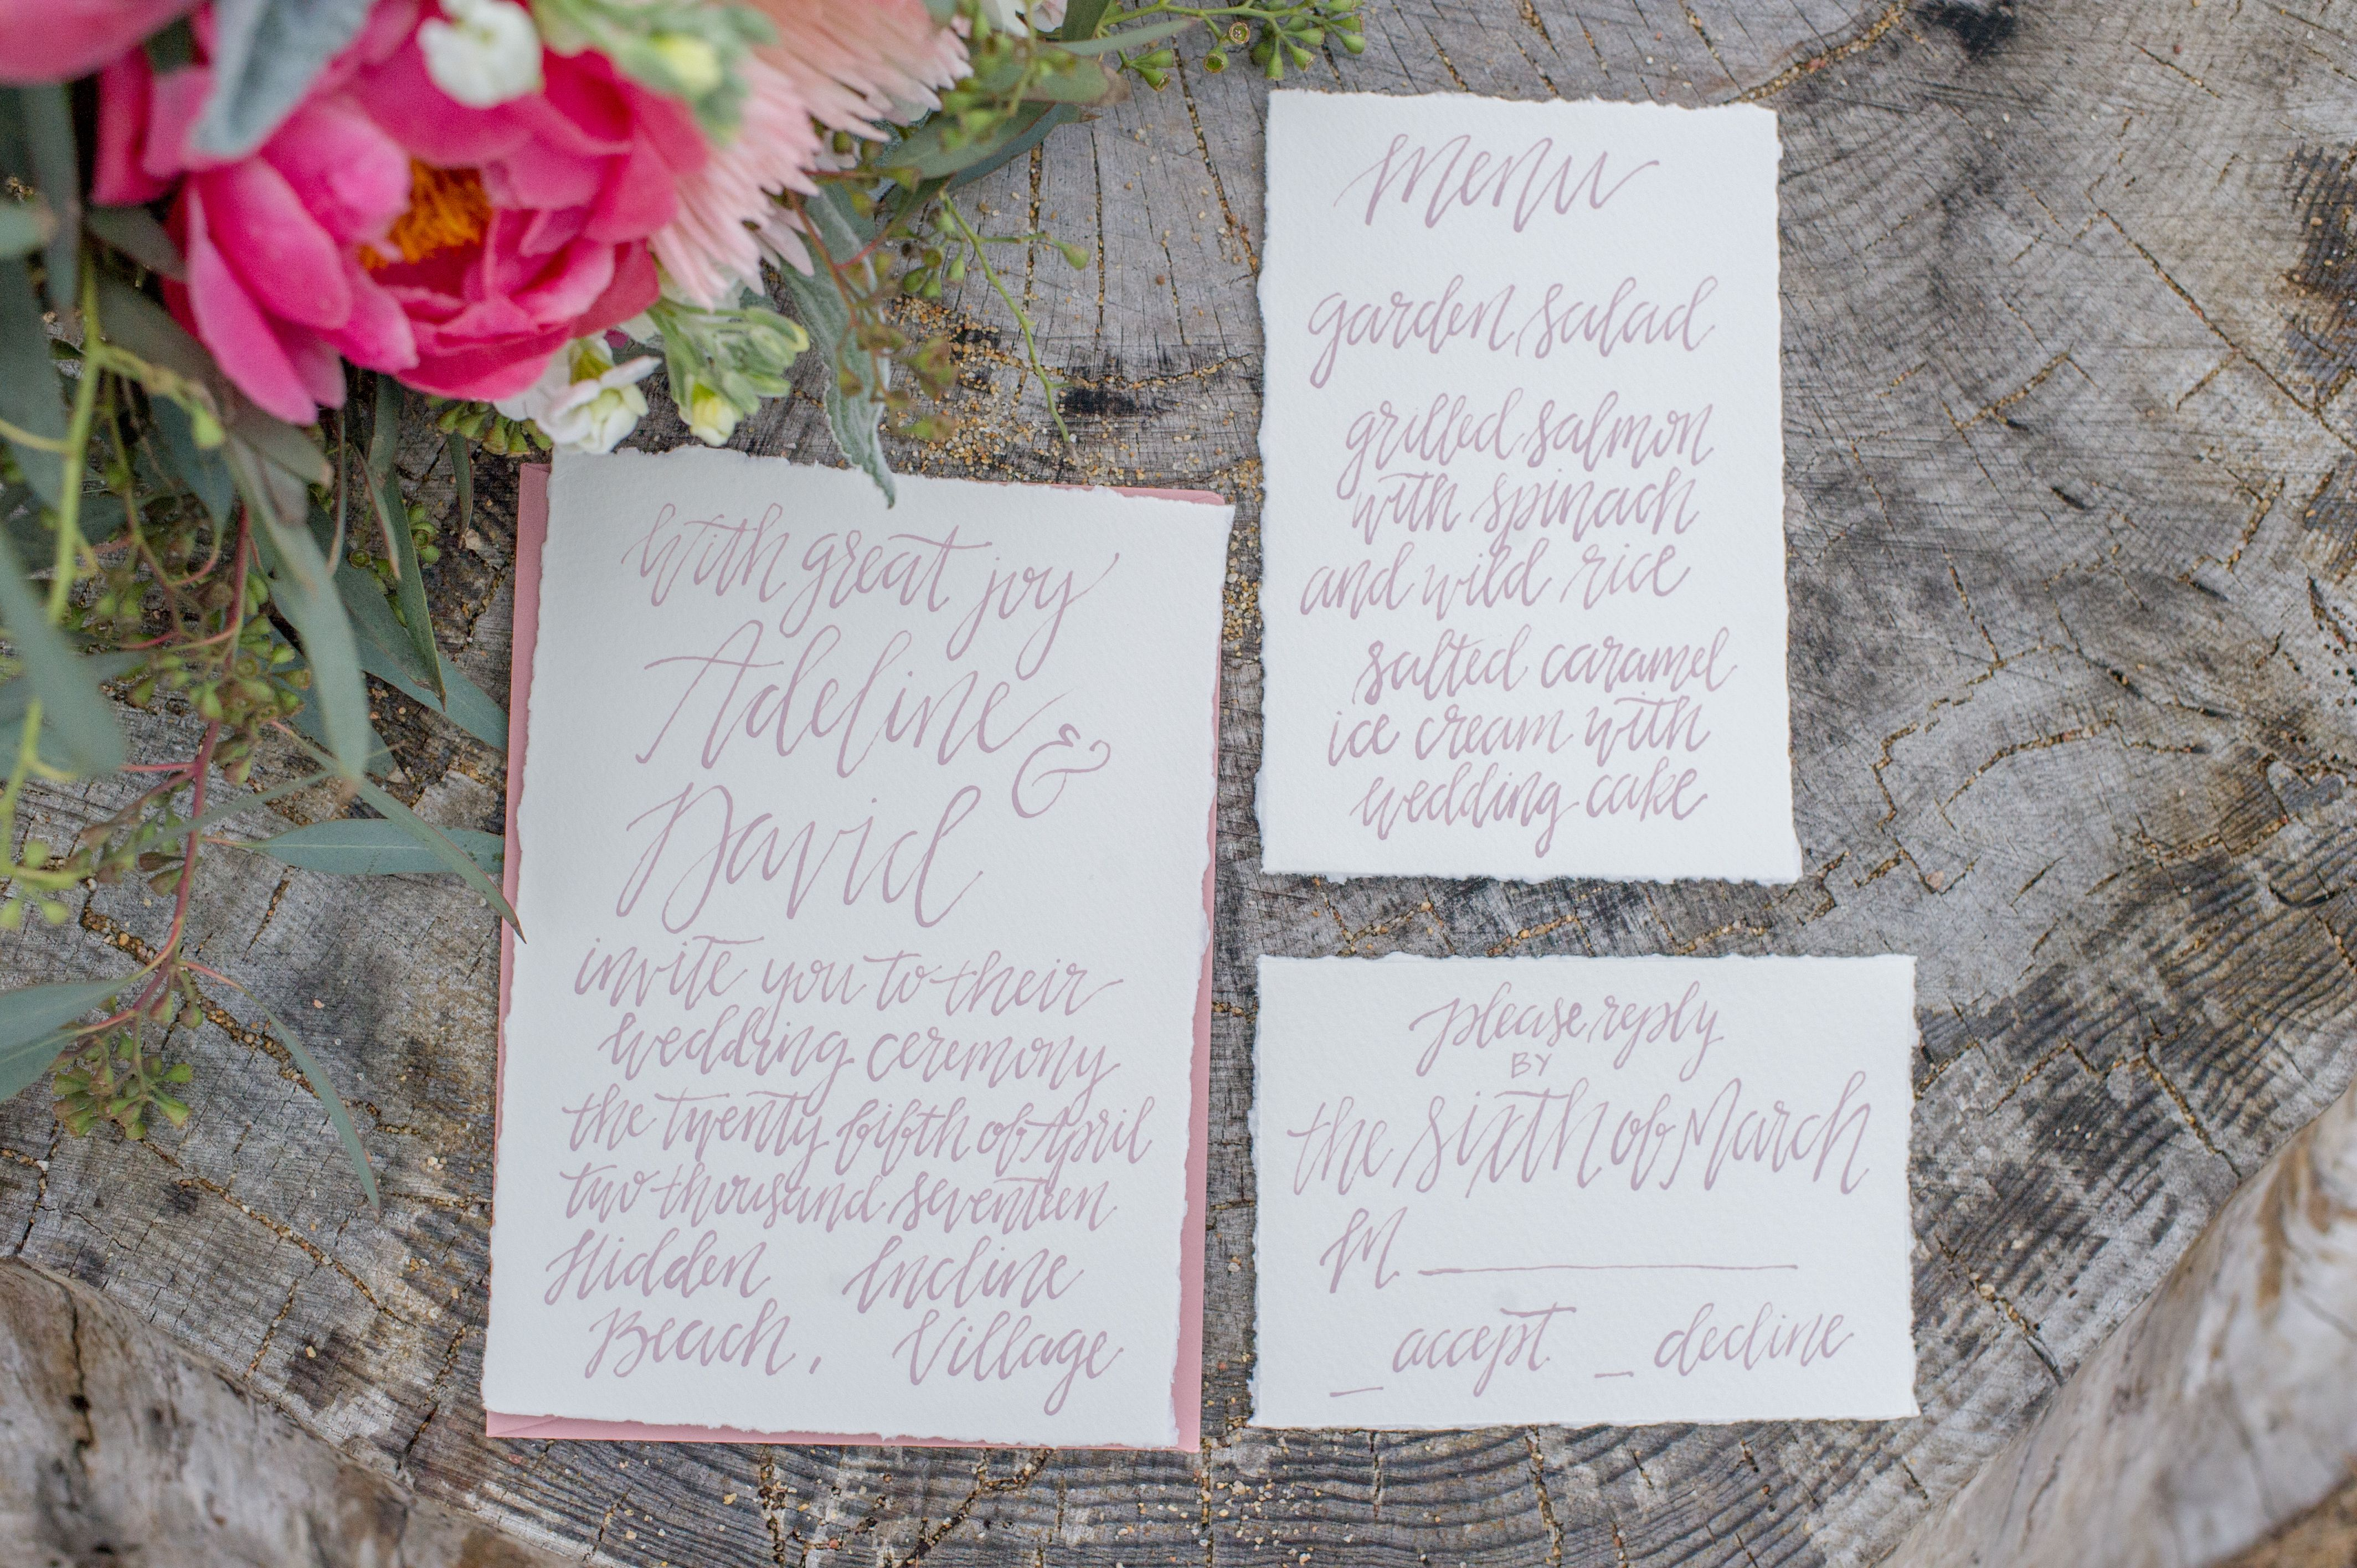 Romantic blush custom calligraphy ink on Arturo deckled edge paper with matching envelope • Photography by Lacey Dippold Photography • Styled Shoot, Hidden Beach, Incline Village, Lake Tahoe, Nevada • Nevada Wedding, California Wedding, Lake Tahoe Wedding